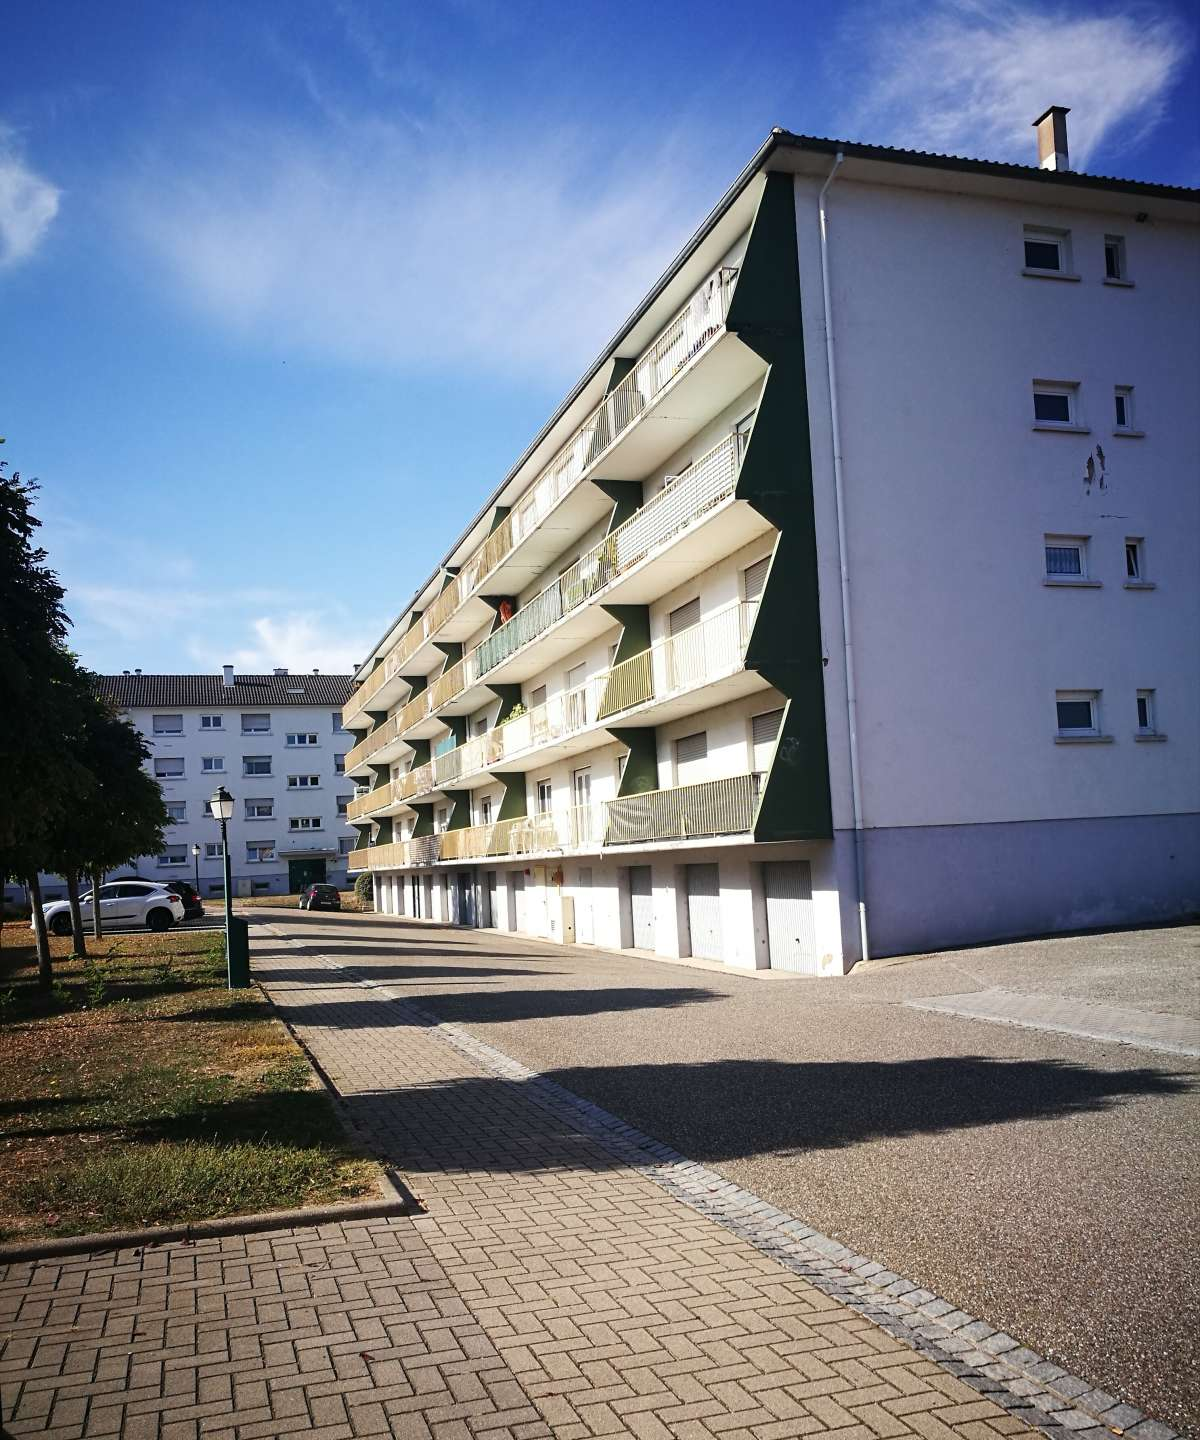 LAUTERBOURG - A LOUER APPARTEMENT 3 CHAMBRES